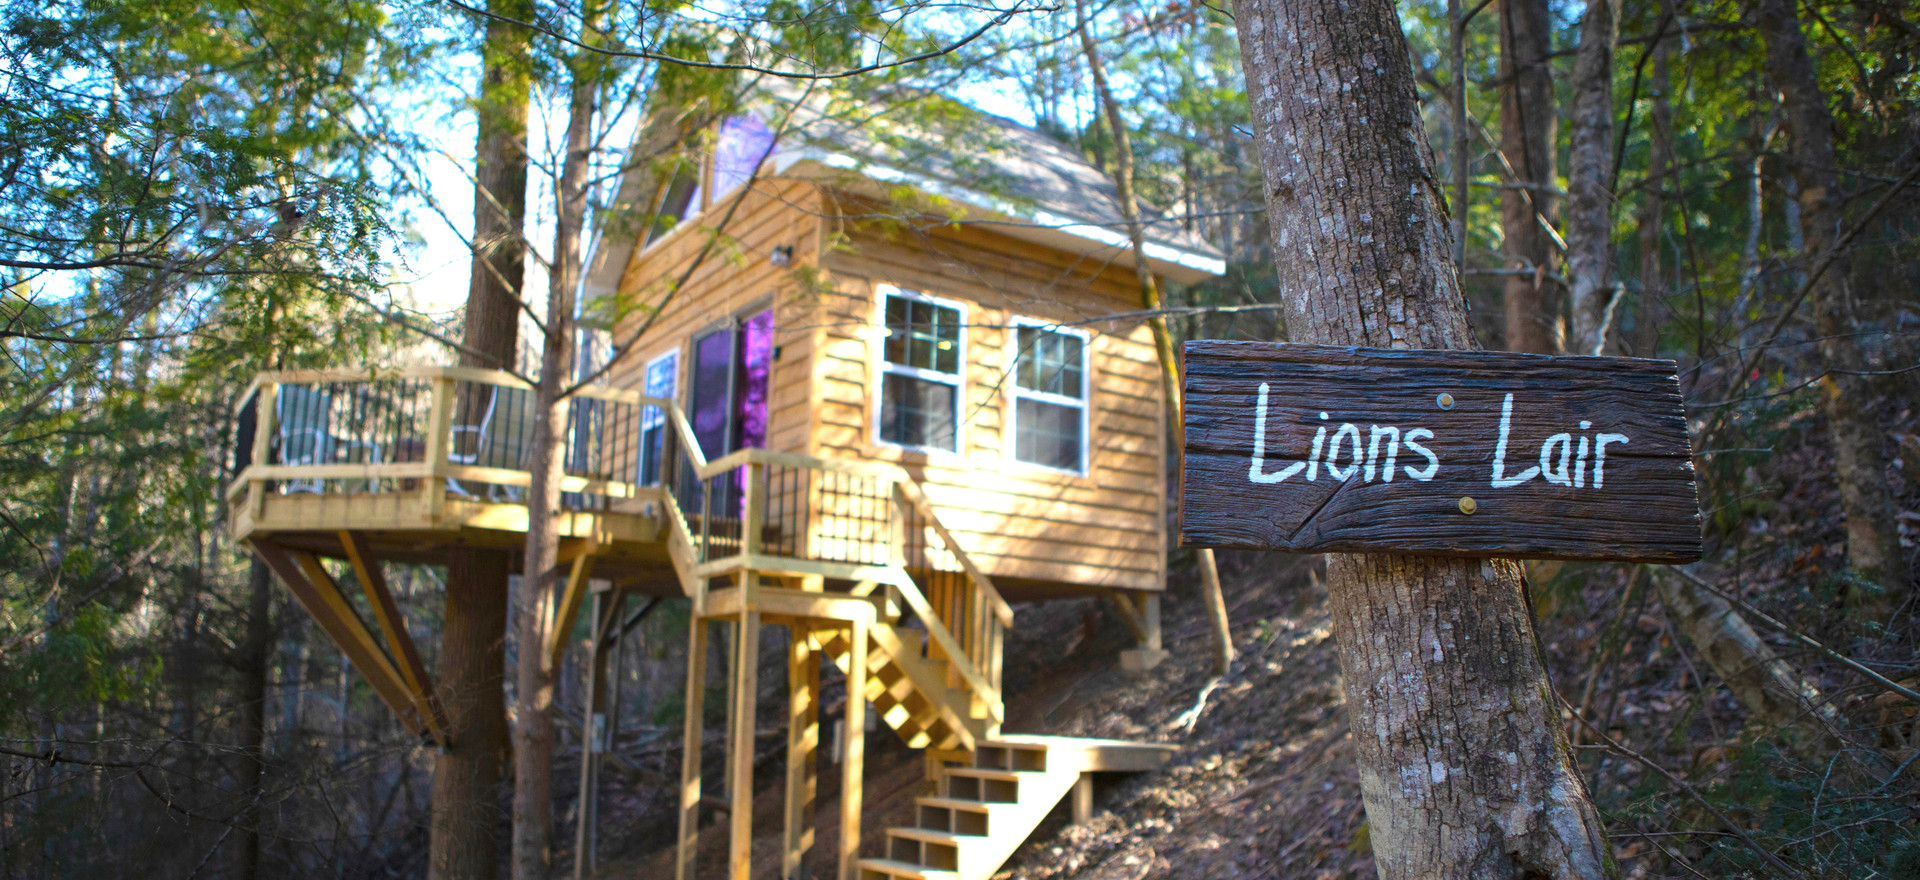 Lions Lair Treehouse!